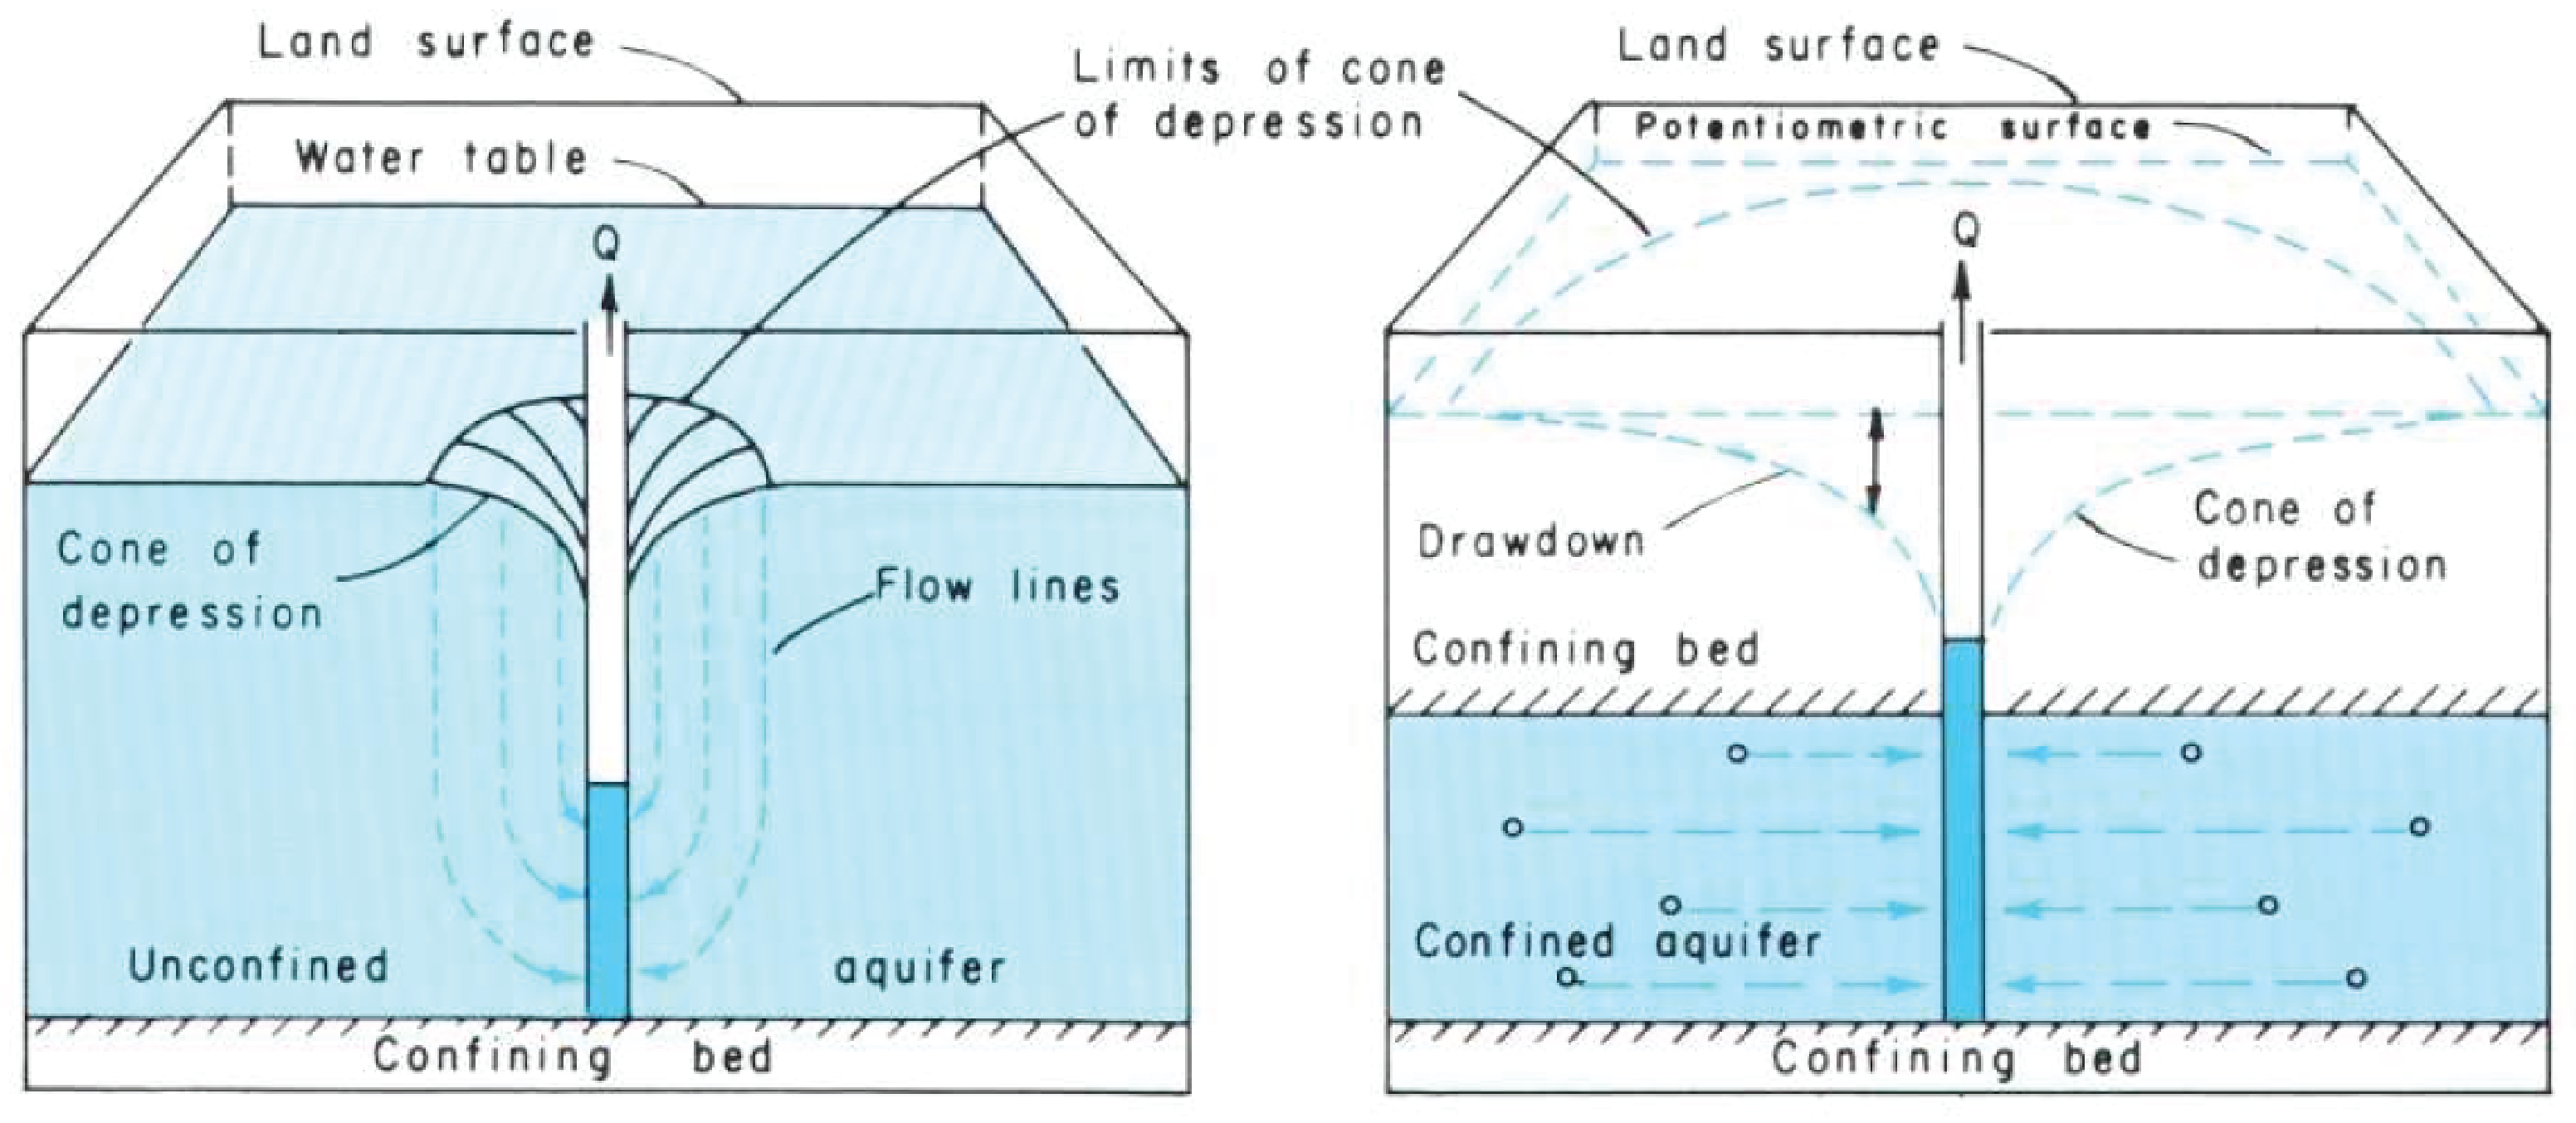 The shape of the potentiometric surface or water table around a pumping well is cone-shaped, where groundwater level has the greatest drawdown near the well.